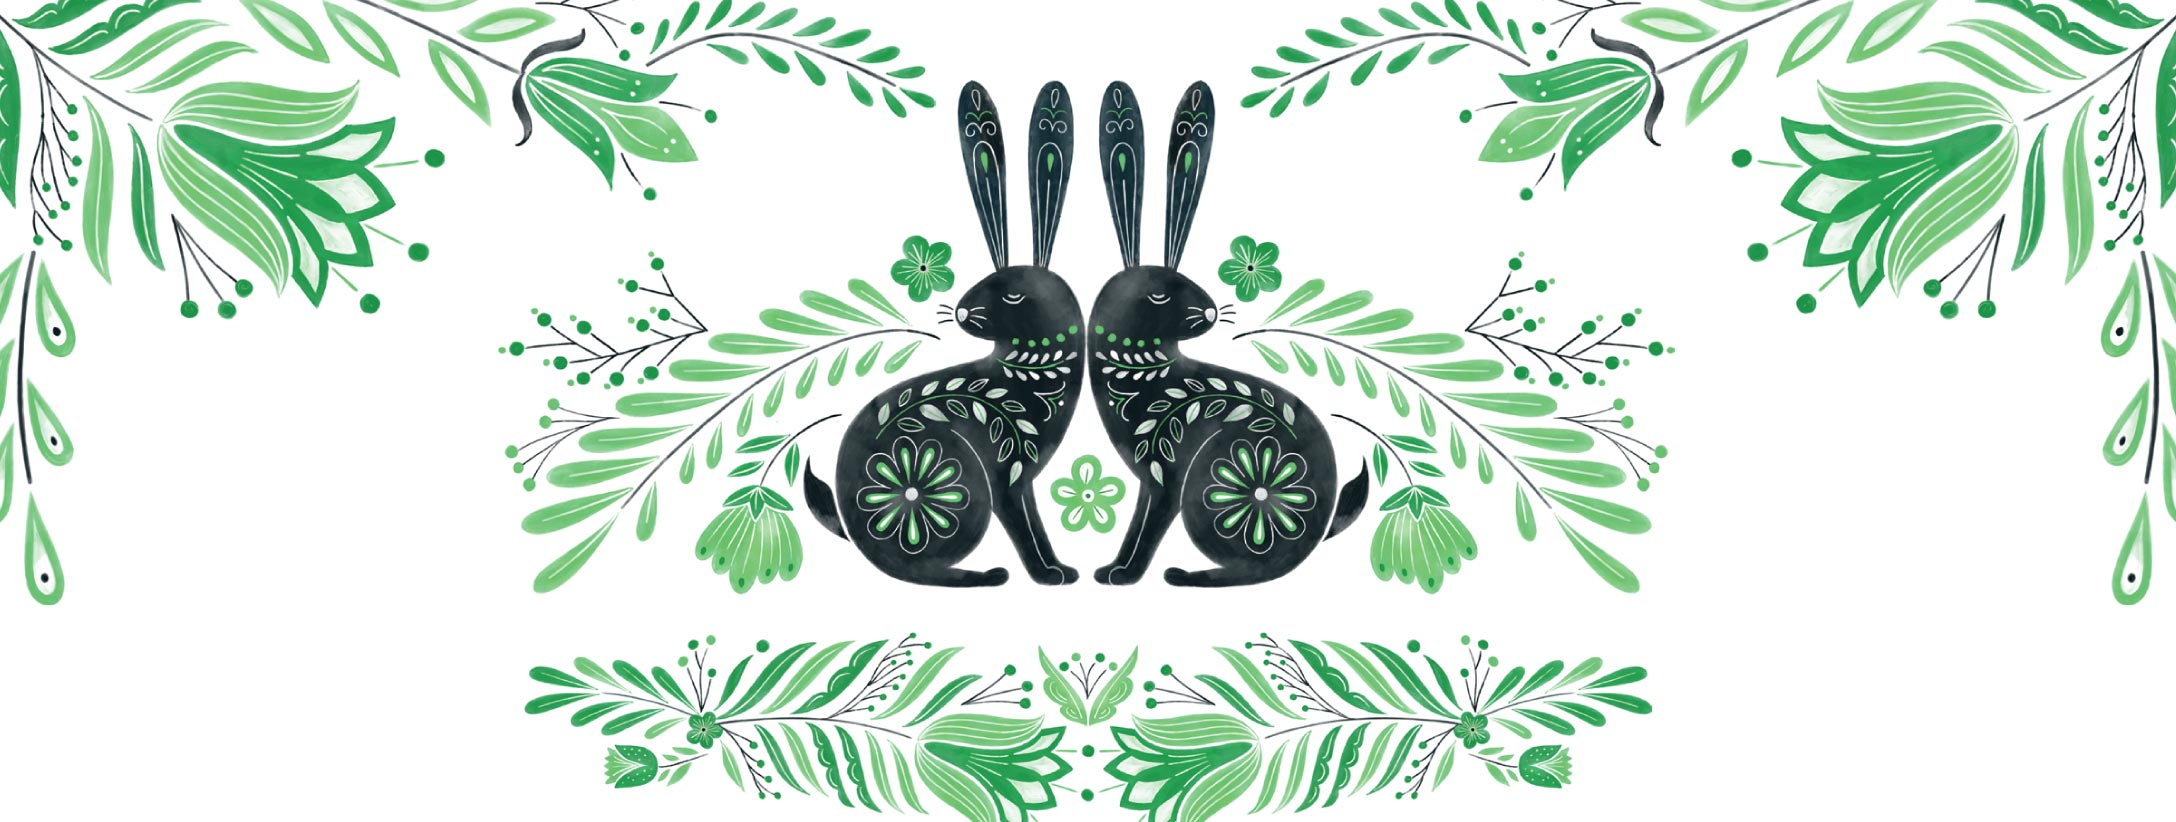 Floral pattern with in black and green.